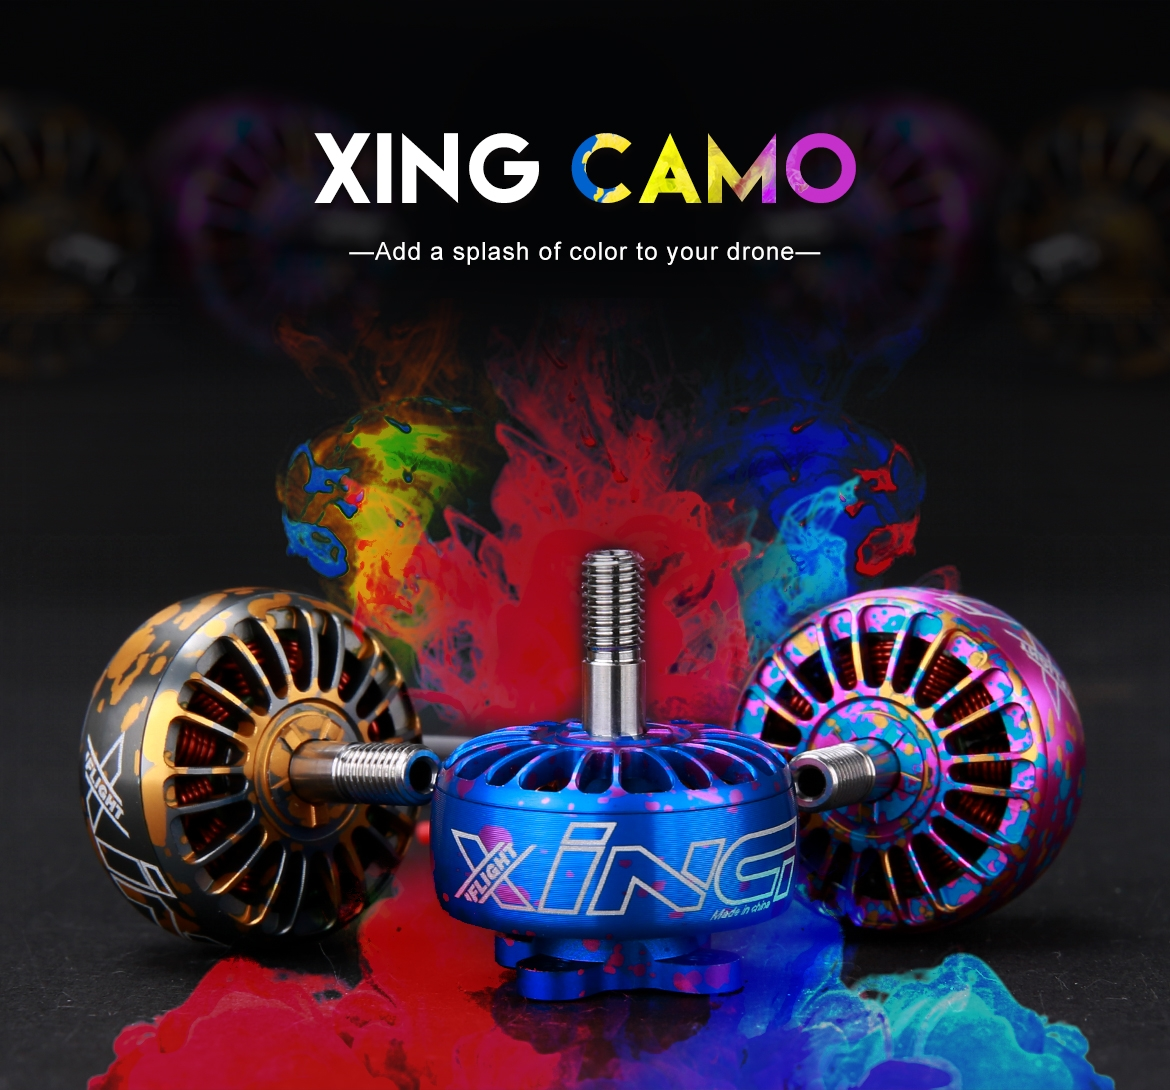 IFlight XING Camo Pink X2208 2208 1700KV 1800KV 2150KV 2450KV Brushless Motor 2-6S For RC Drone FPV Racing Multi Rotor